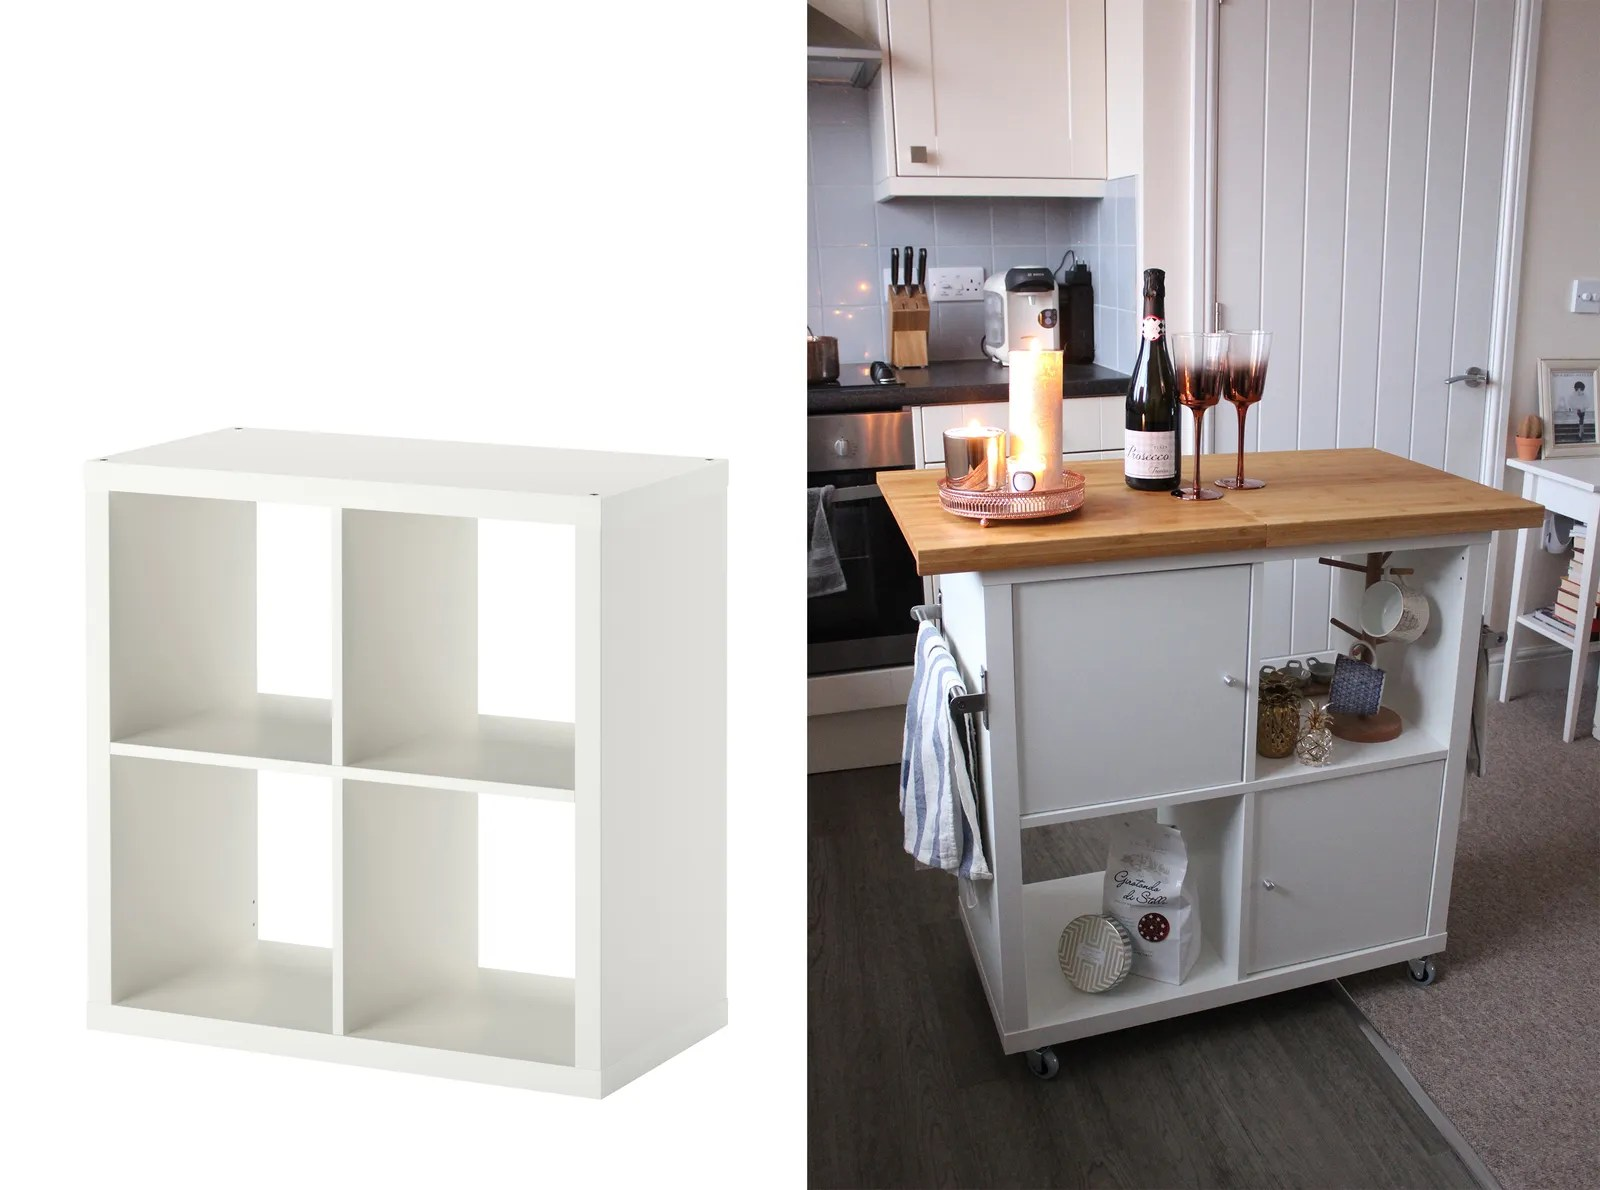 Ikea Hacks 7 Ikea Hacks For Your Kitchen That You Can Actually Do Bon Appétit